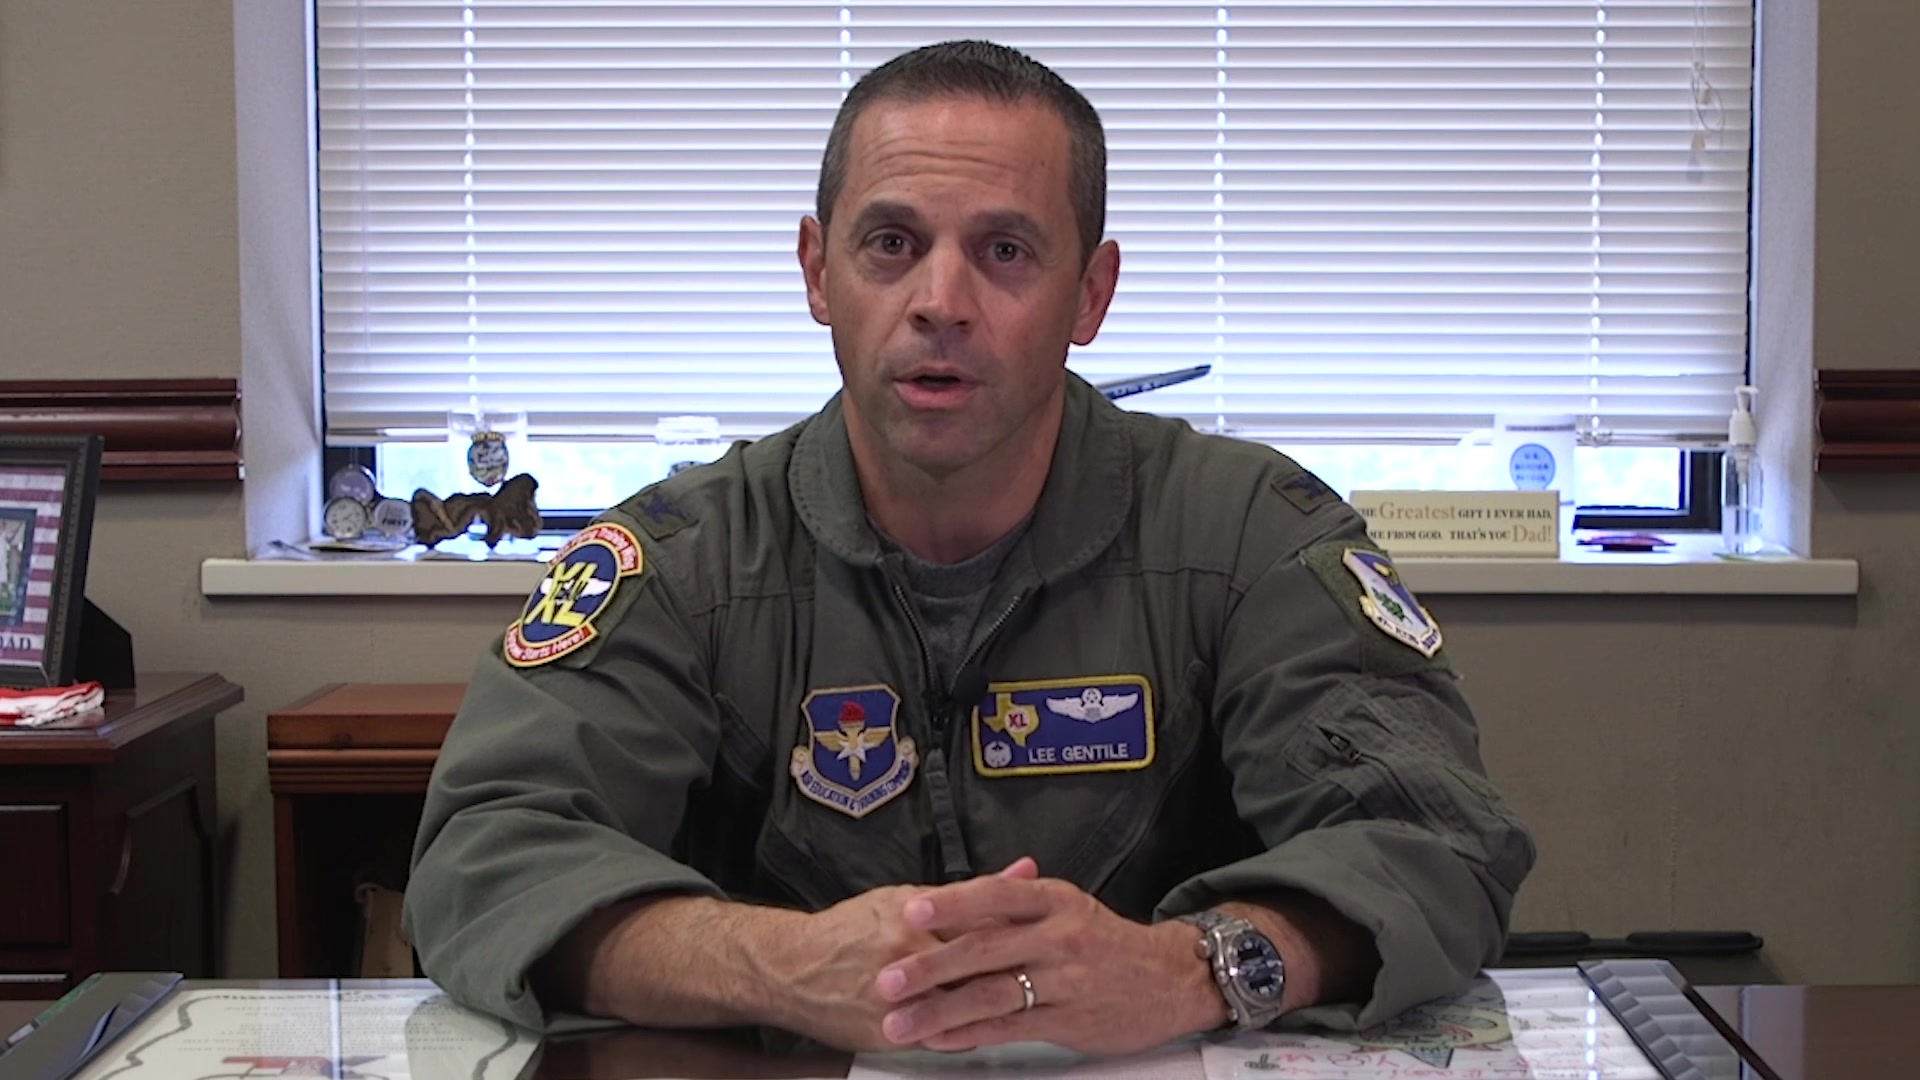 Col. Lee Gentile, 47th Flying Training Wing commander, addresses Laughlin personnel about feeling connected, respected and protected by their peers Aug. 2, 2019, at Laughlin Air Force Base, Texas.